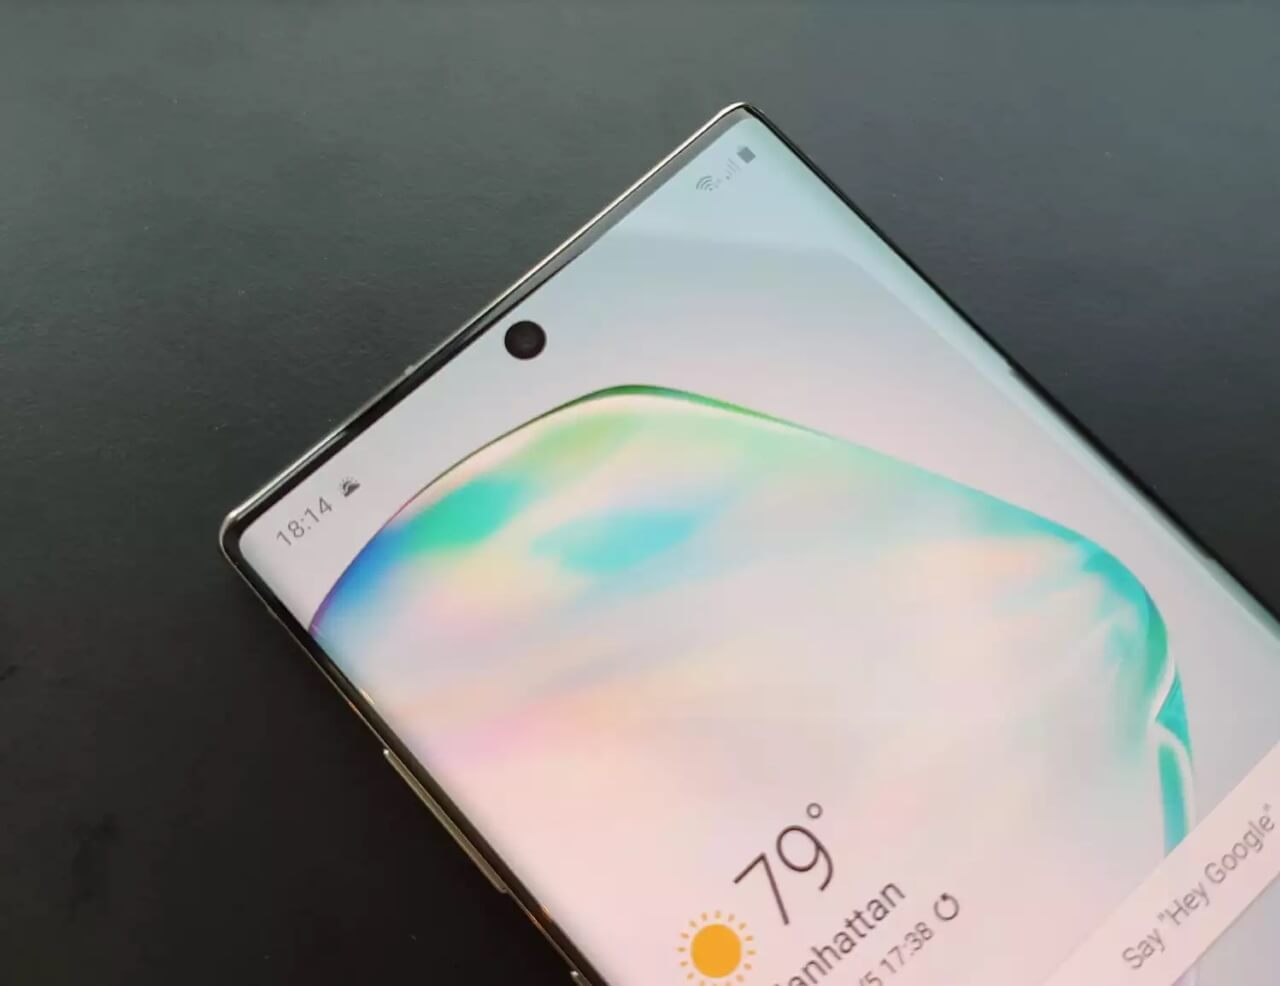 Screen burn-in issues on Samsung Galaxy Note10Plus